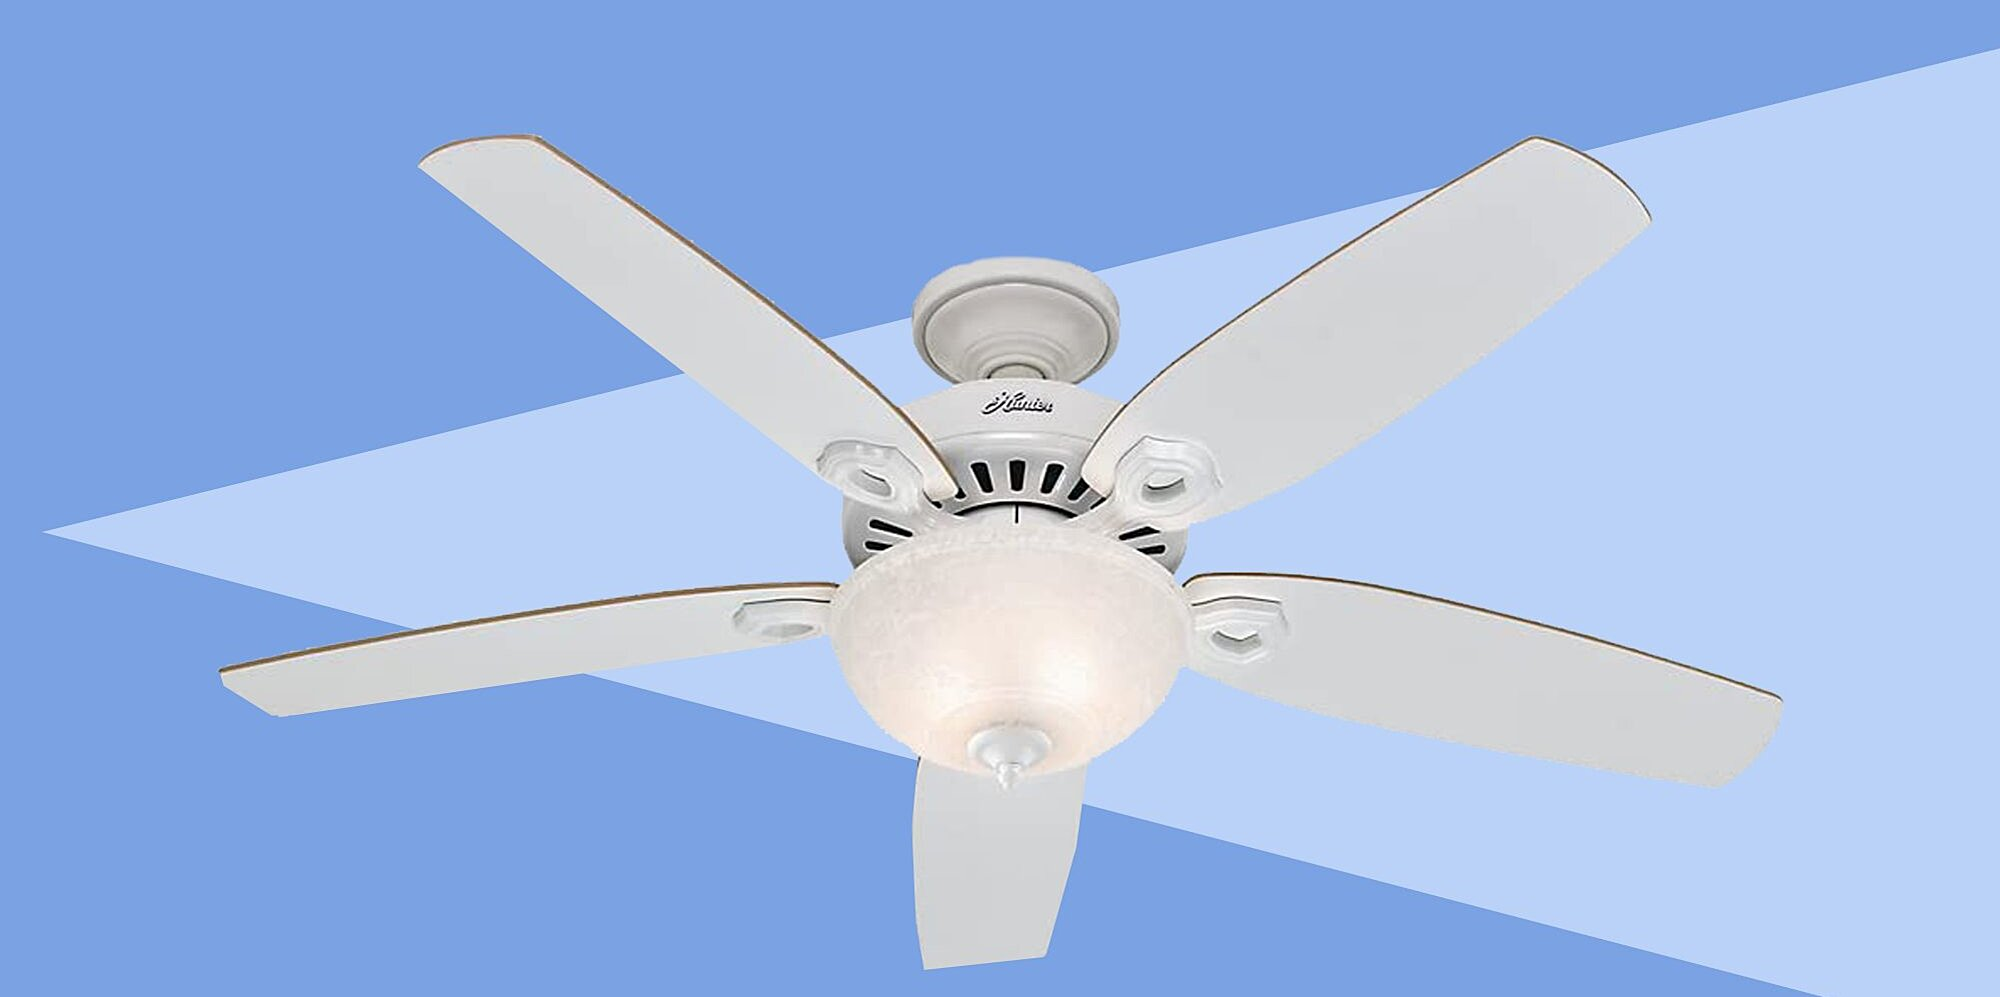 The 10 Best Fans to Keep Your Home Cool, According to Customer Reviews